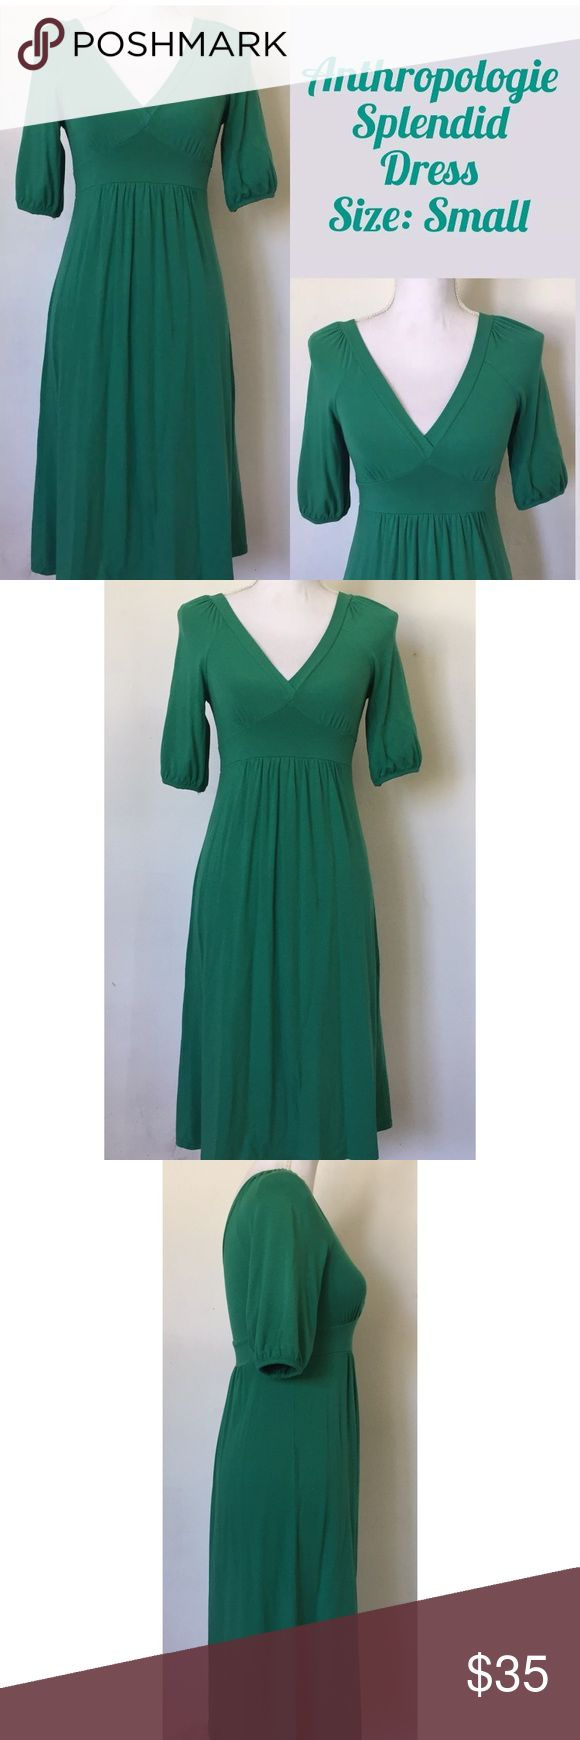 """Splendid Women's Empire Waist Dress, Green (EUC) Details: EUC In excellent used condition. No rips or stains. Normal fabric pulling from being worn and washed. Style No. SDML0803B V-Neckline 3/4 Sleeve Fabric: Cotton Blend Style: Empire Waist Color: Green Size: Small Approx. 26"""" Bust Approx. 31"""" Length Splendid Dresses"""